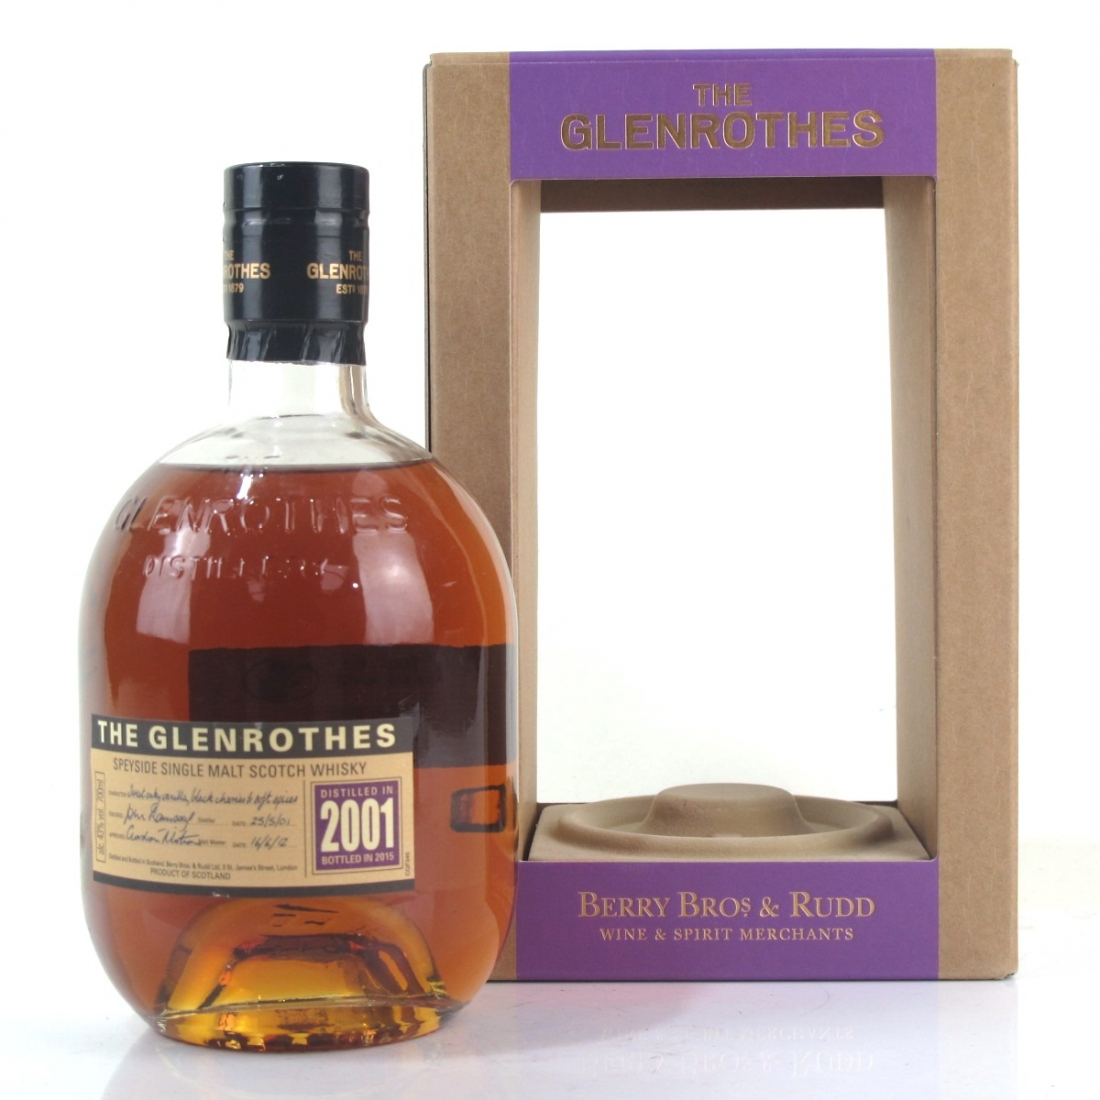 Glenrothes 2001 Vintage / Berry Brothers & Rudd